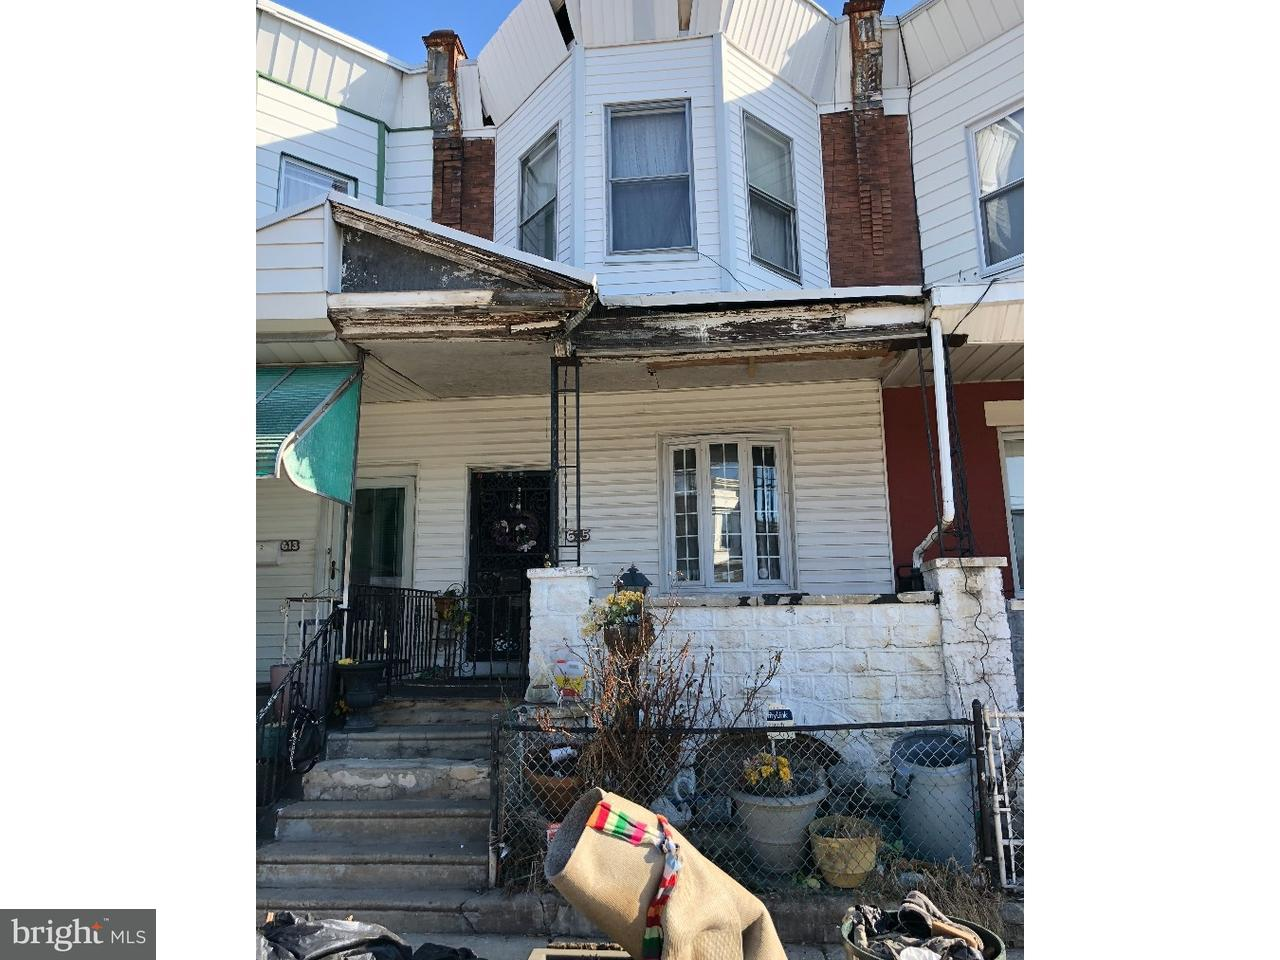 615 S 55TH Philadelphia, PA 19143